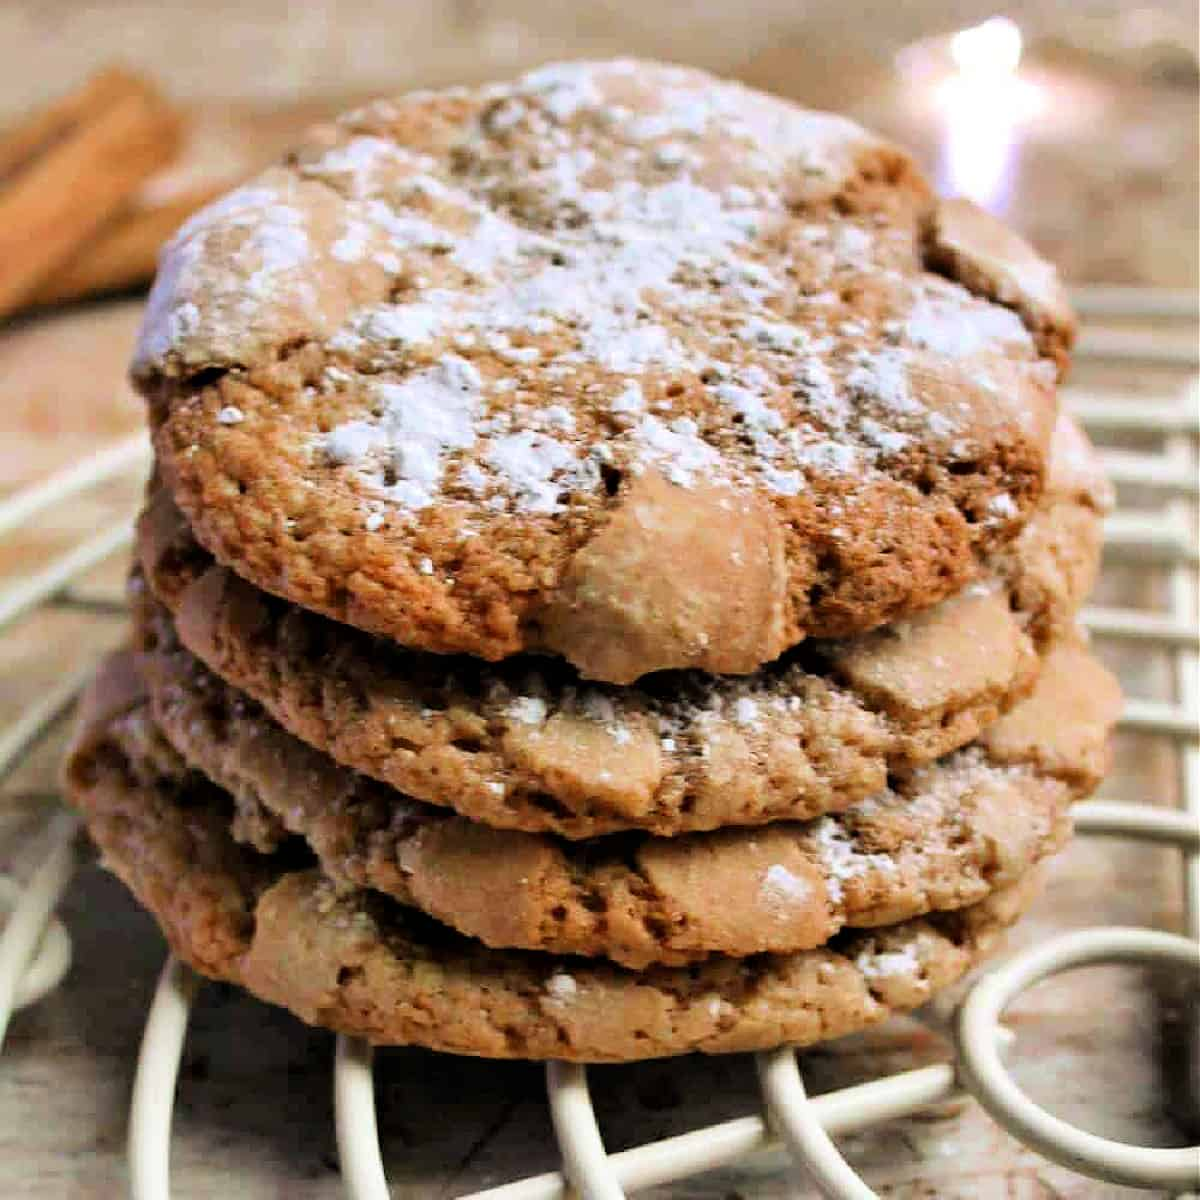 A stack of cookies with powdered sugar dusted on top.